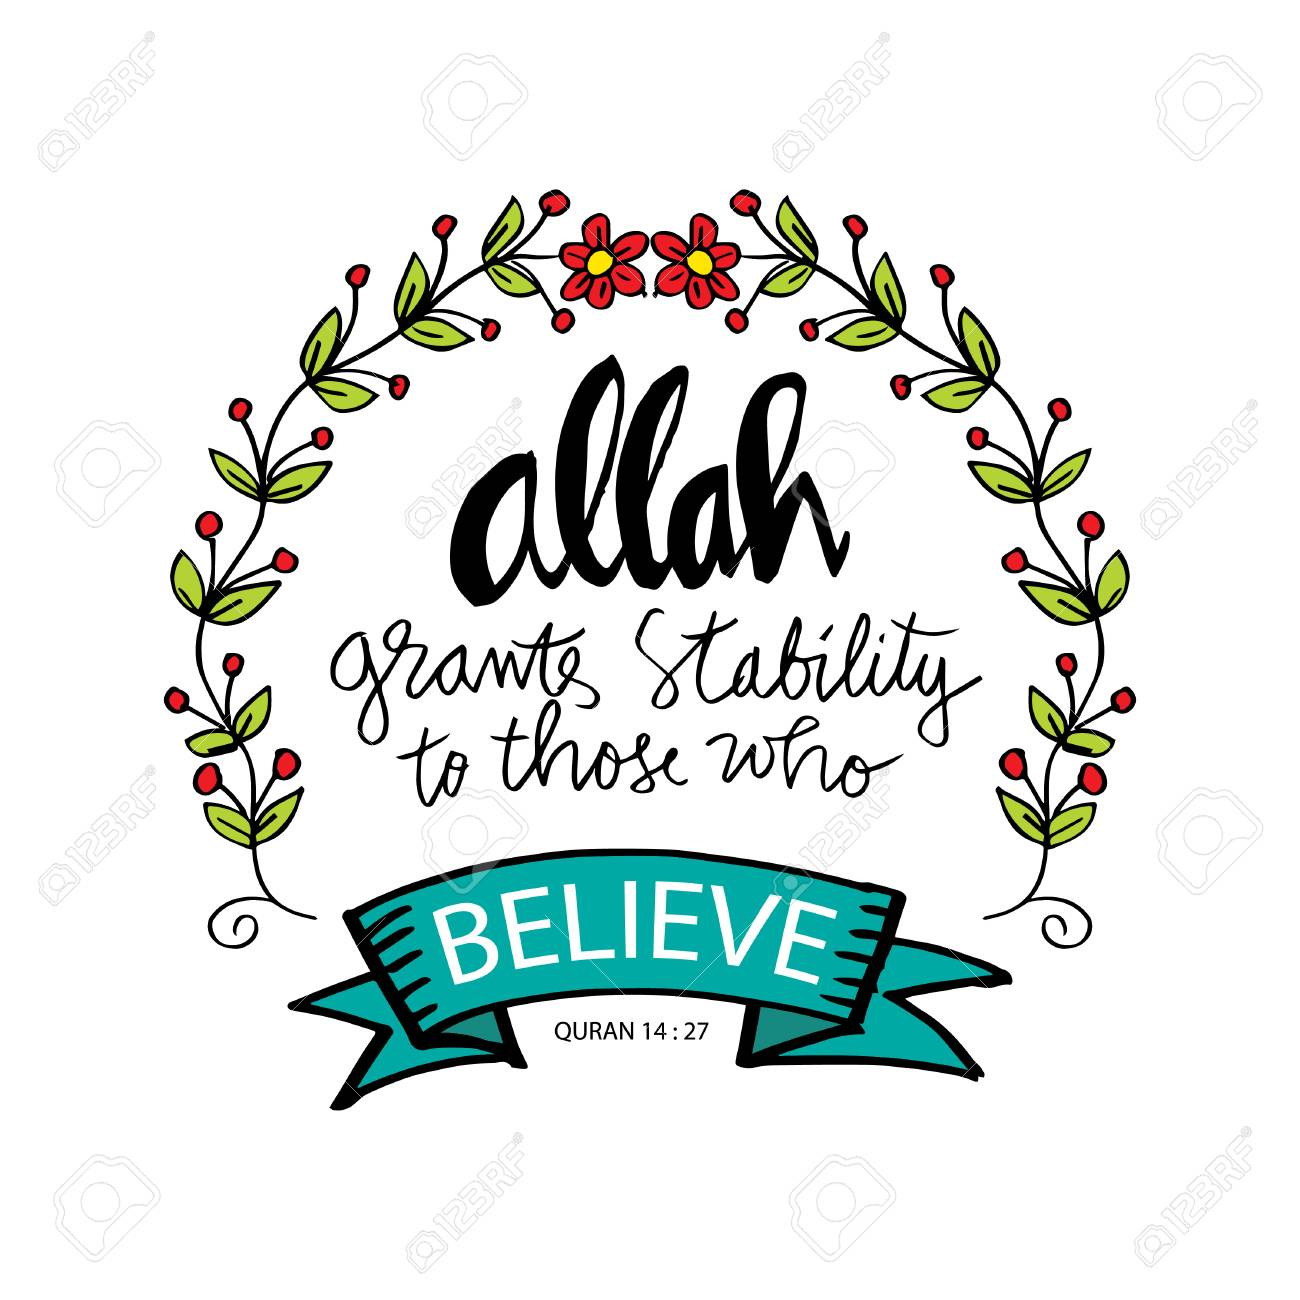 Allah grants stability to those who believe. Islamic quran quotes - 99195779